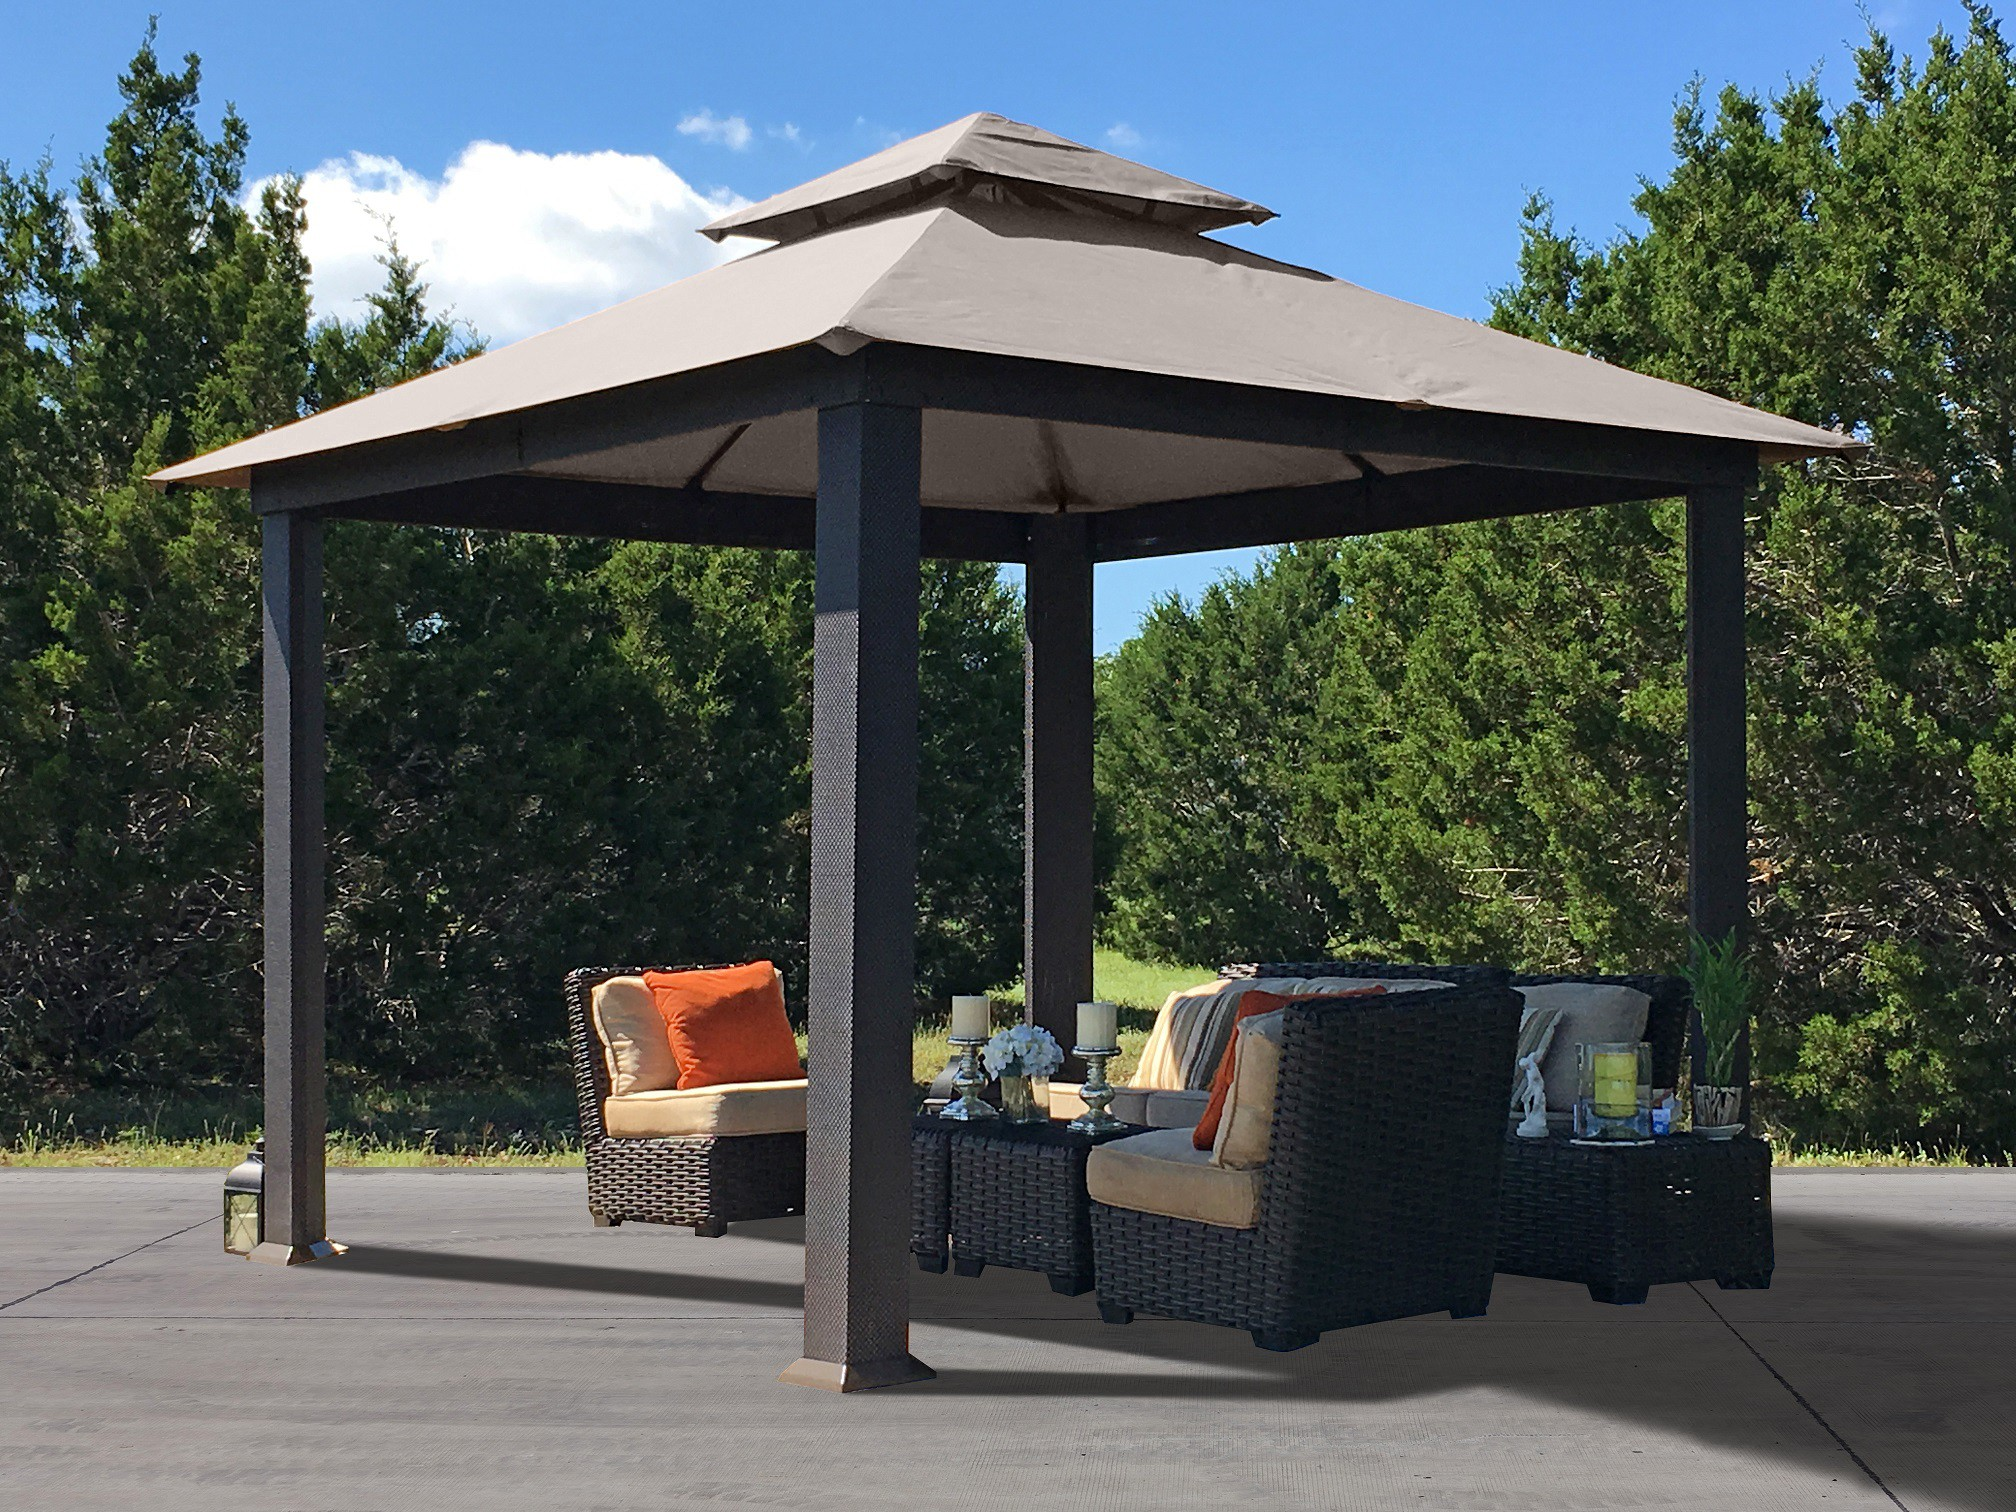 Portable Carport Costco Outdoor Canopies Pop Up Canopy Portable Shade Carports